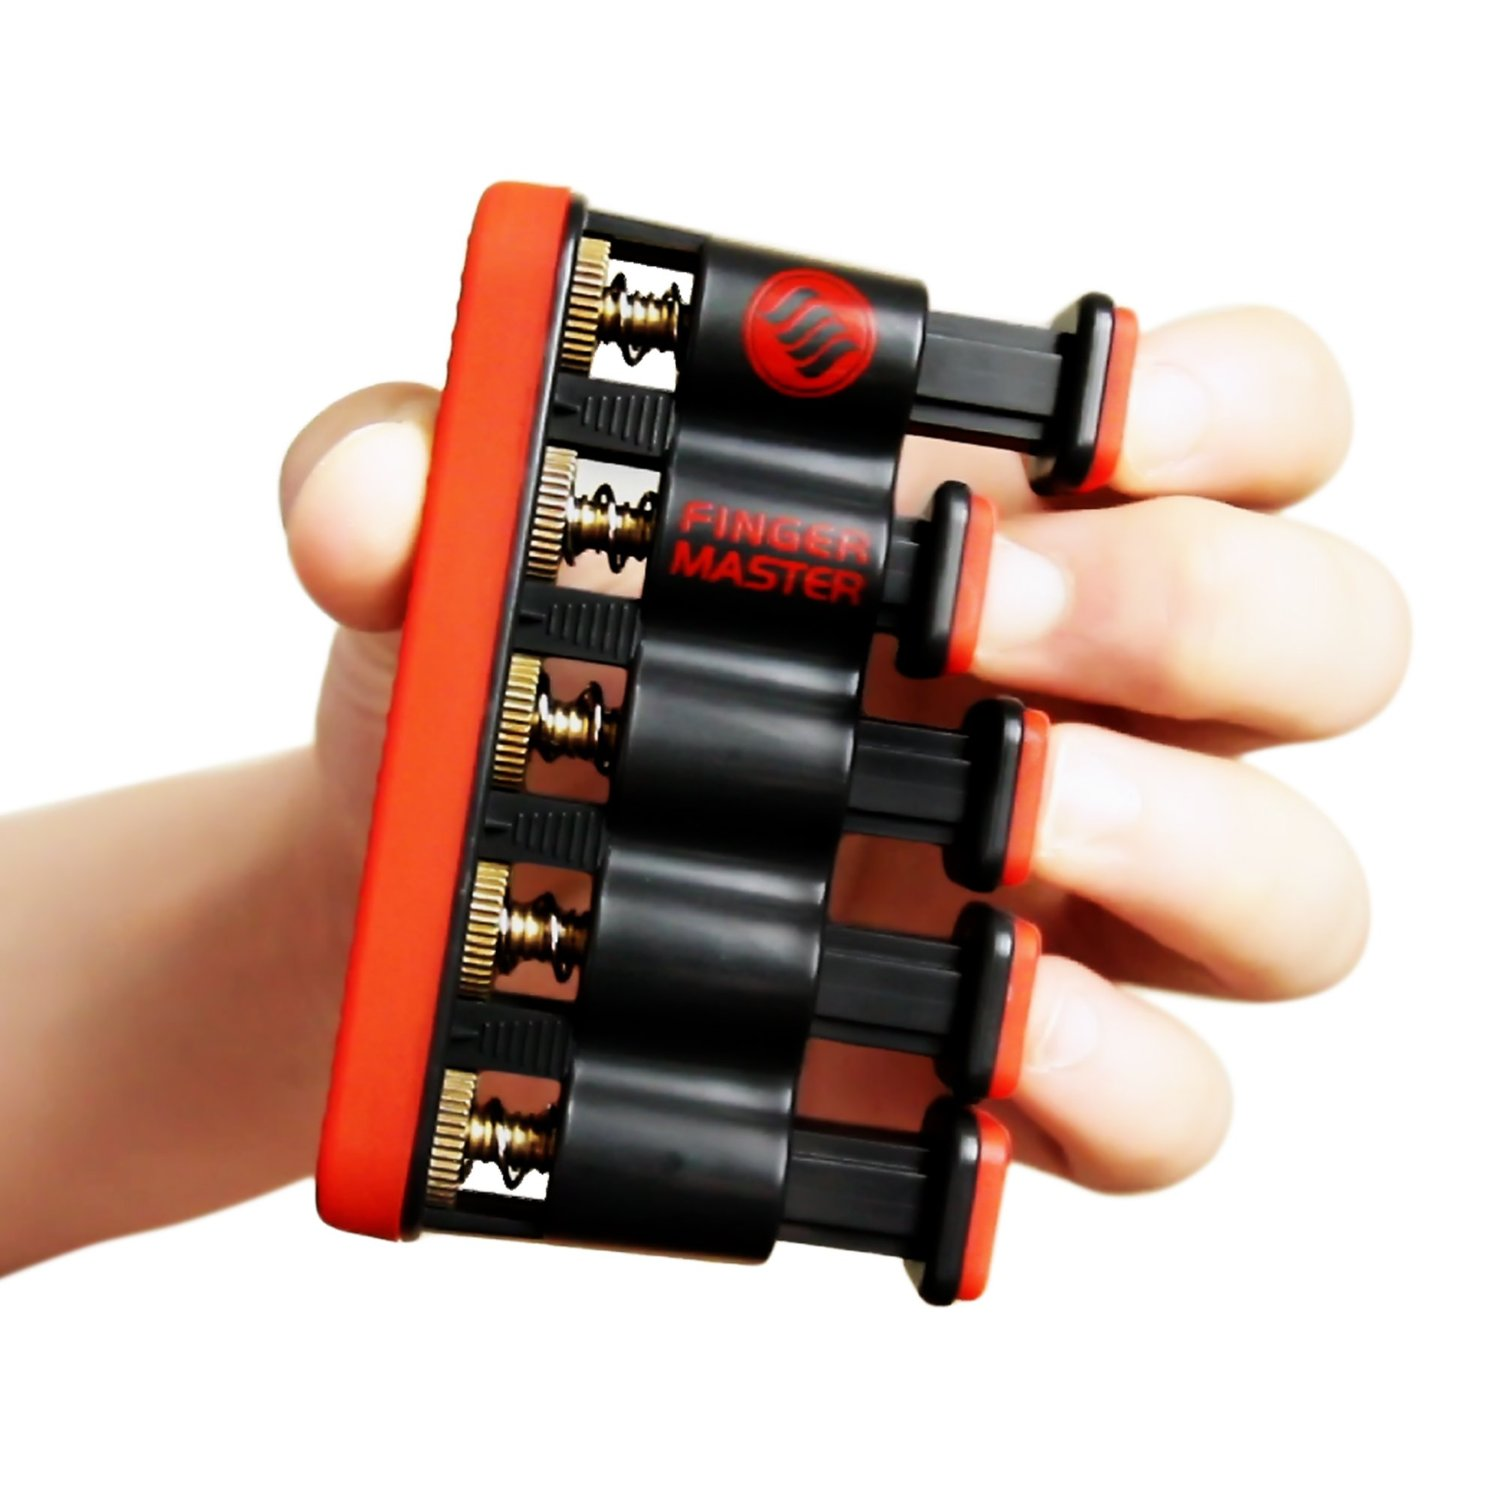 Finger Master Hand Exerciser For Grip Finger Strengthening Bjj